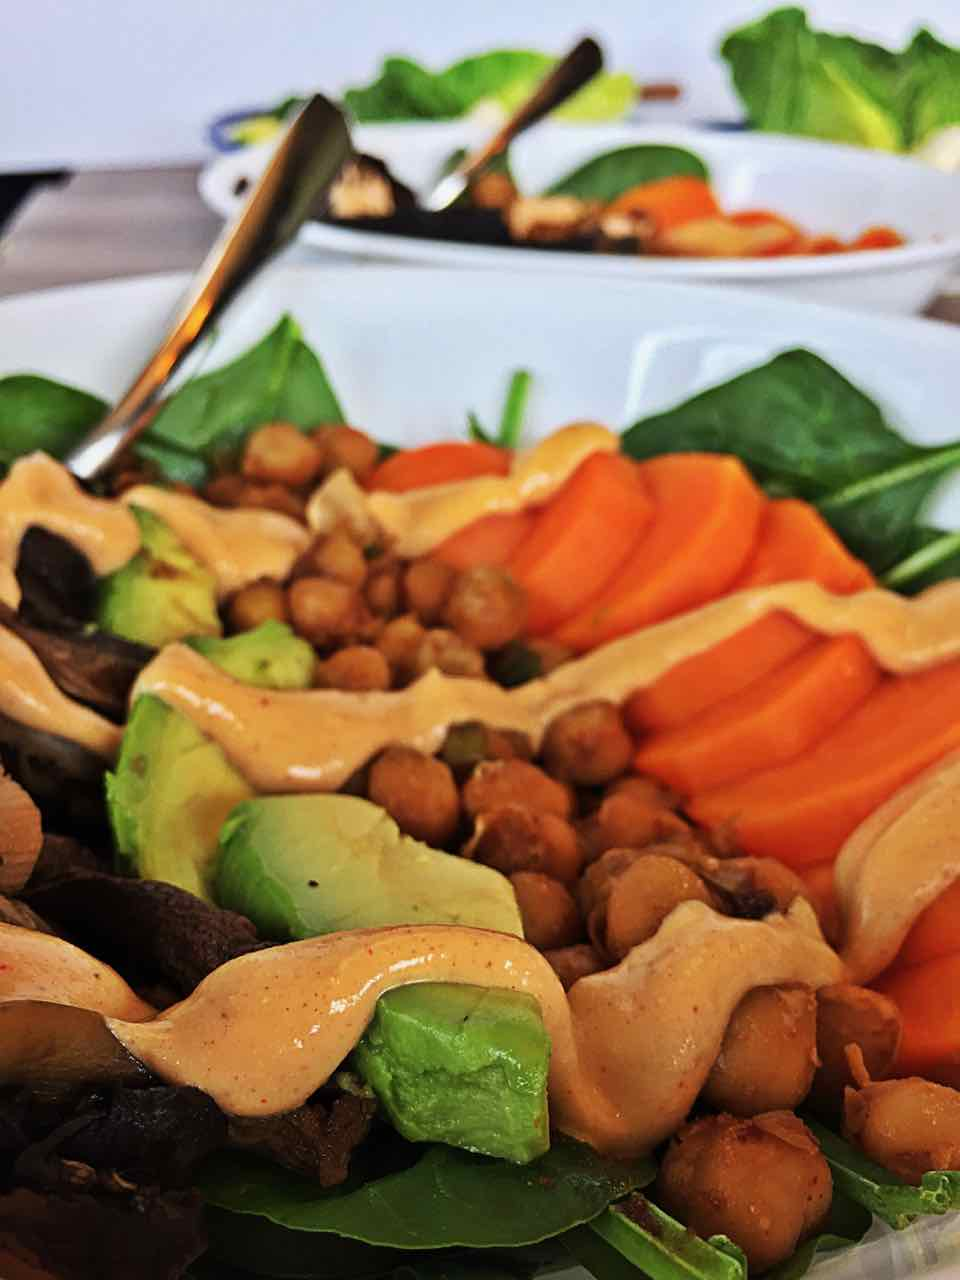 Image of fiery vegan sweet potato chickpea mushroom spinach bowl.